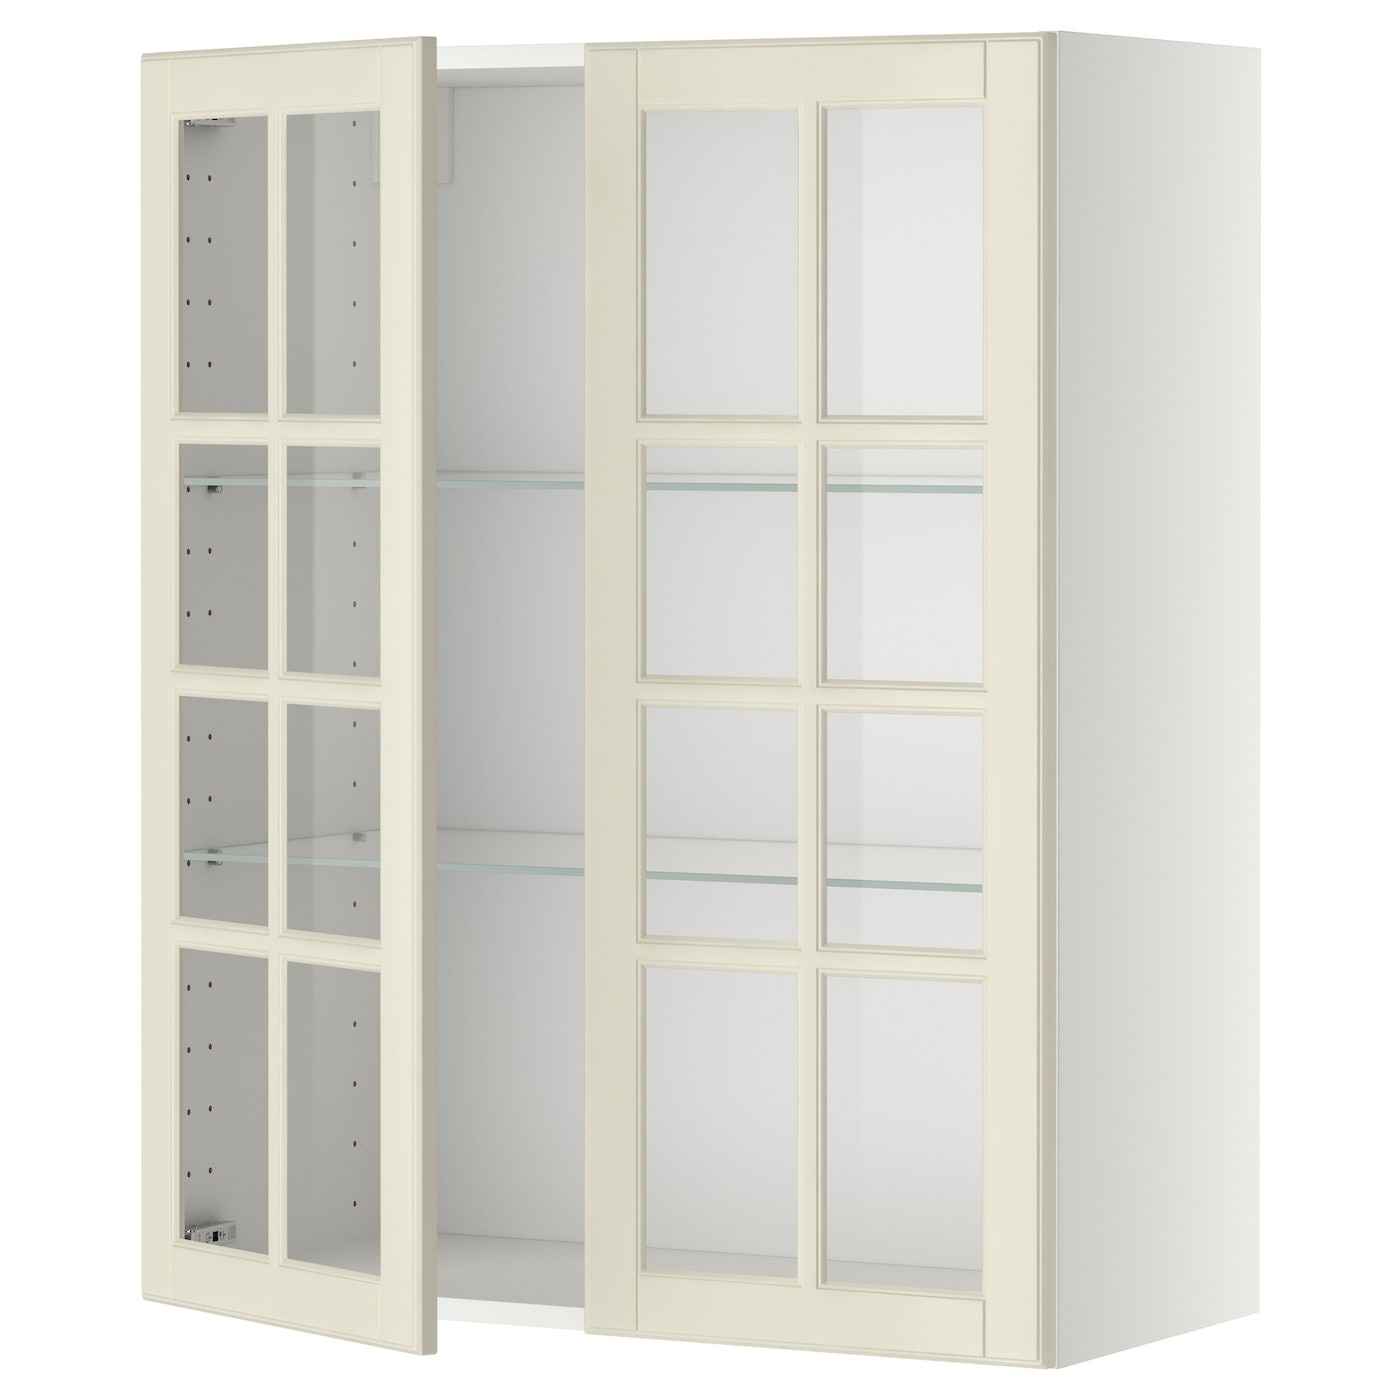 Ikea Metod Wall Cabinet W Shelves 2 Gl Drs Sy Frame Construction 18 Mm